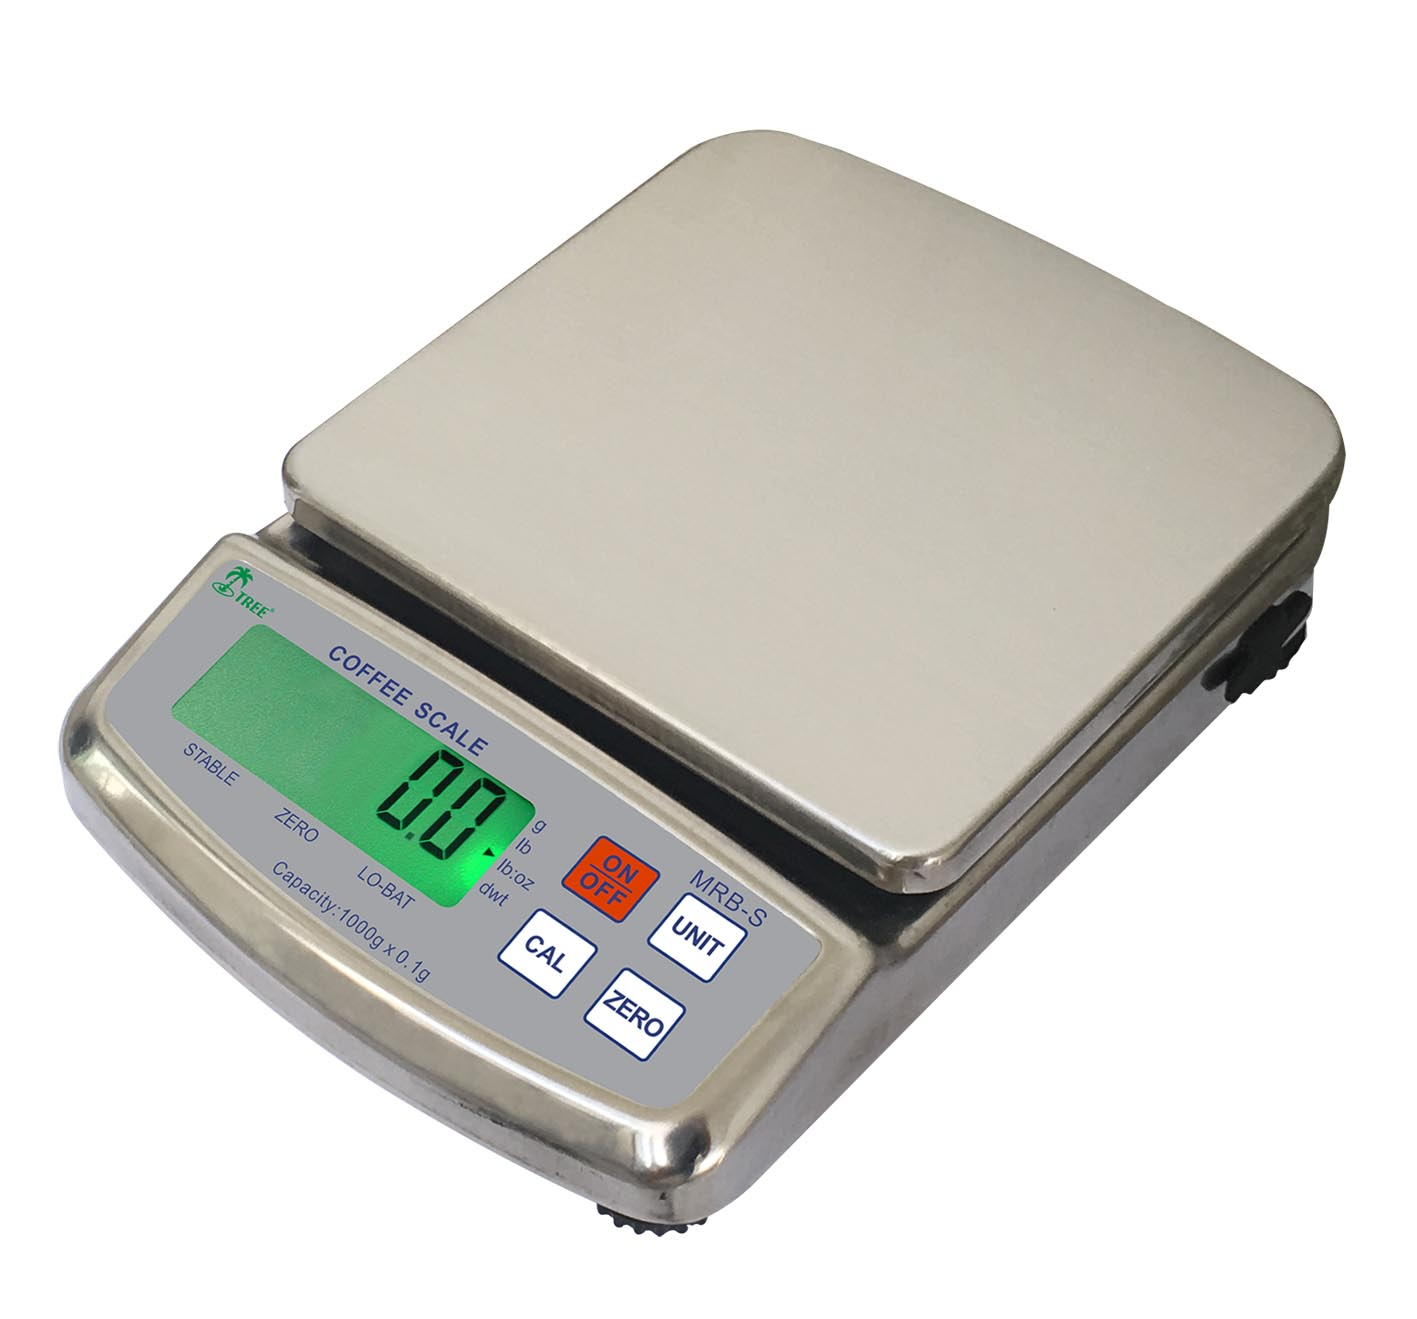 12 x 0.0002 LB DIGITAL SCALE STAINLESS STEEL FOOD KITCHEN NEW 6000 x 0.1 GRAM SS